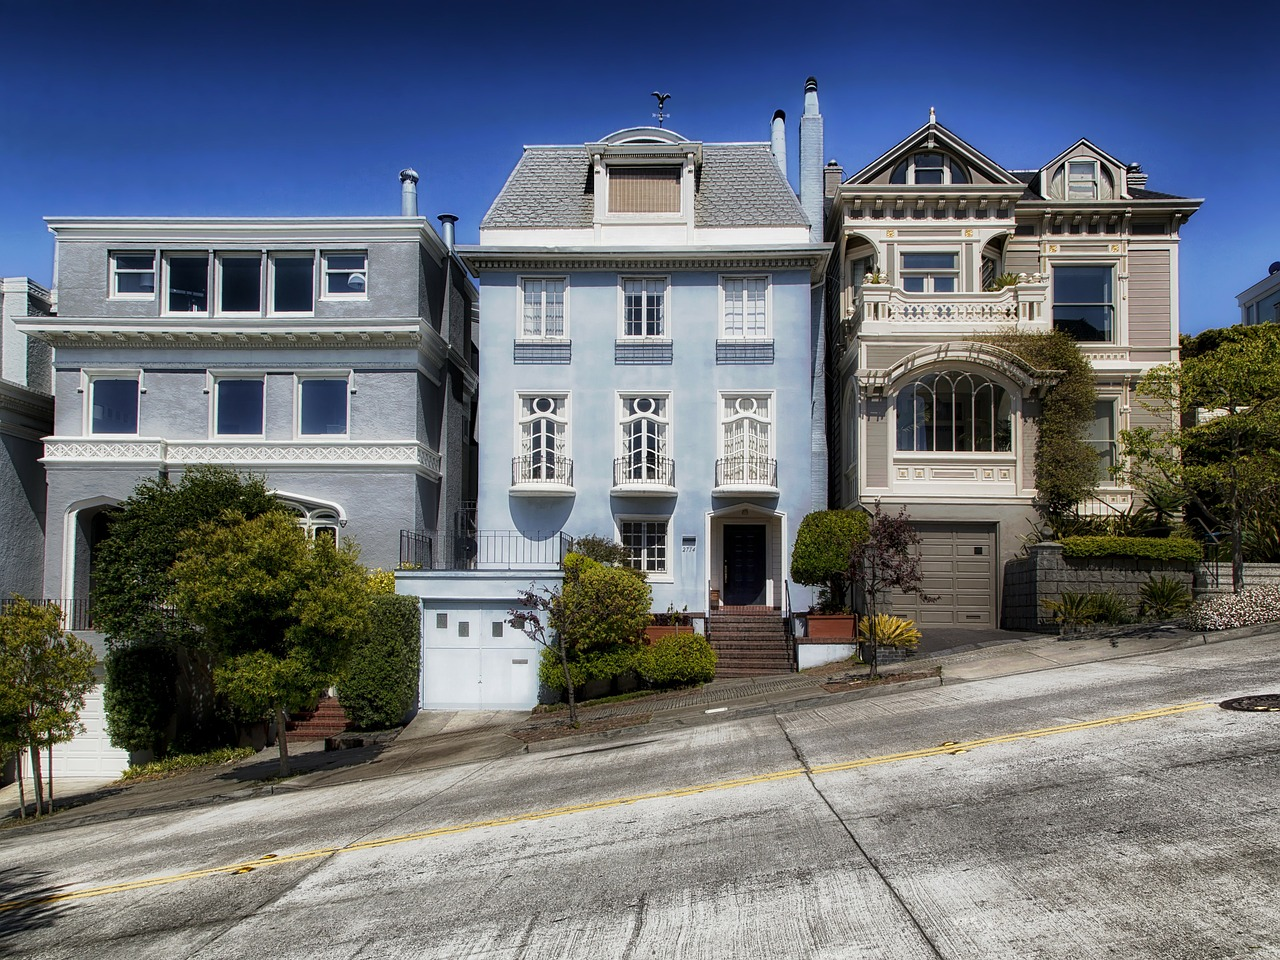 Homes-in-San-Francisco1